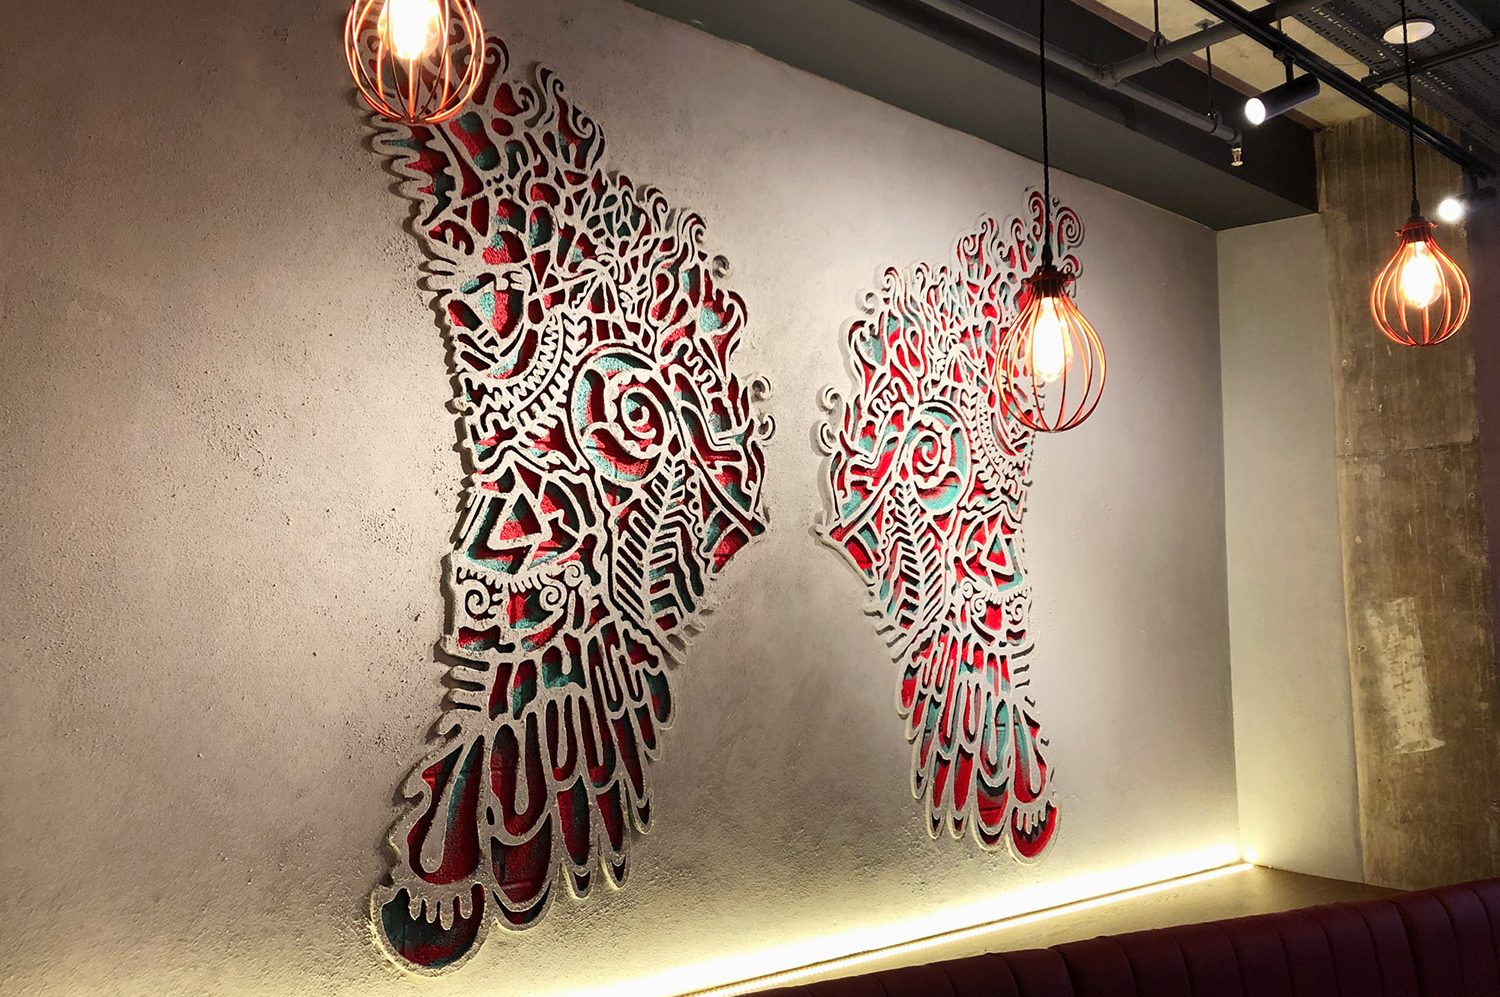 Interior wall art and illustration for Mod Pizza by Saint Design